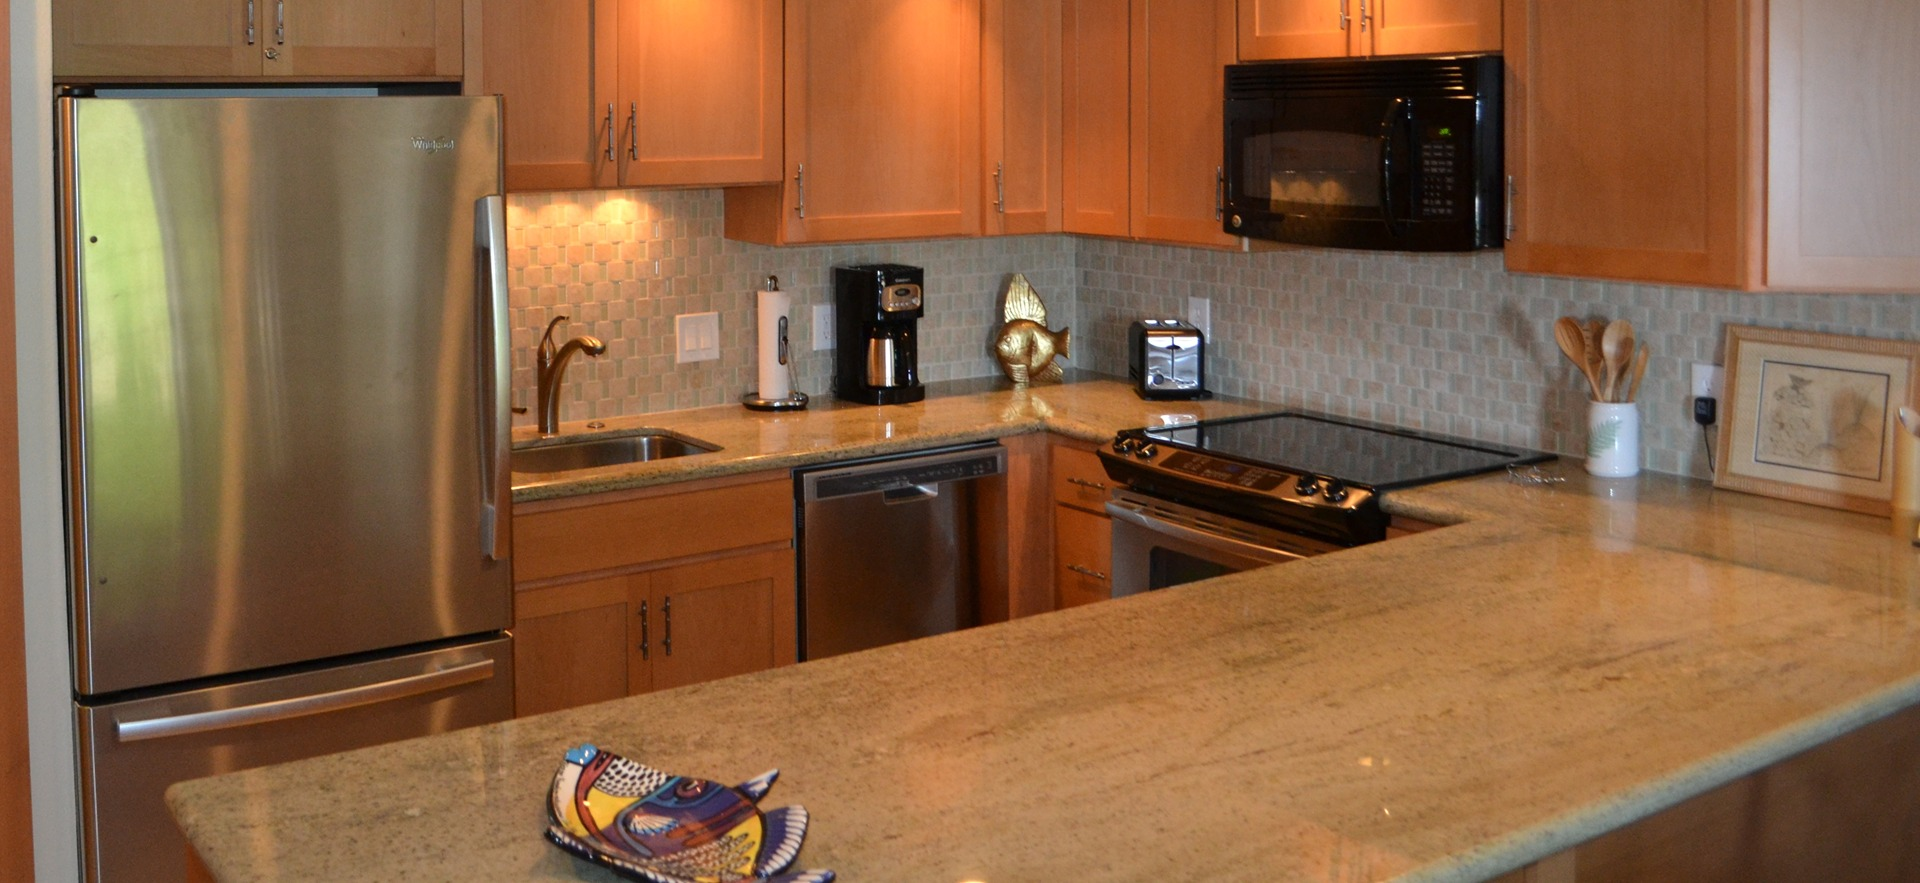 Maui Kitchen Remodeling Experts | Maui Interior Designs | Maui Contractor